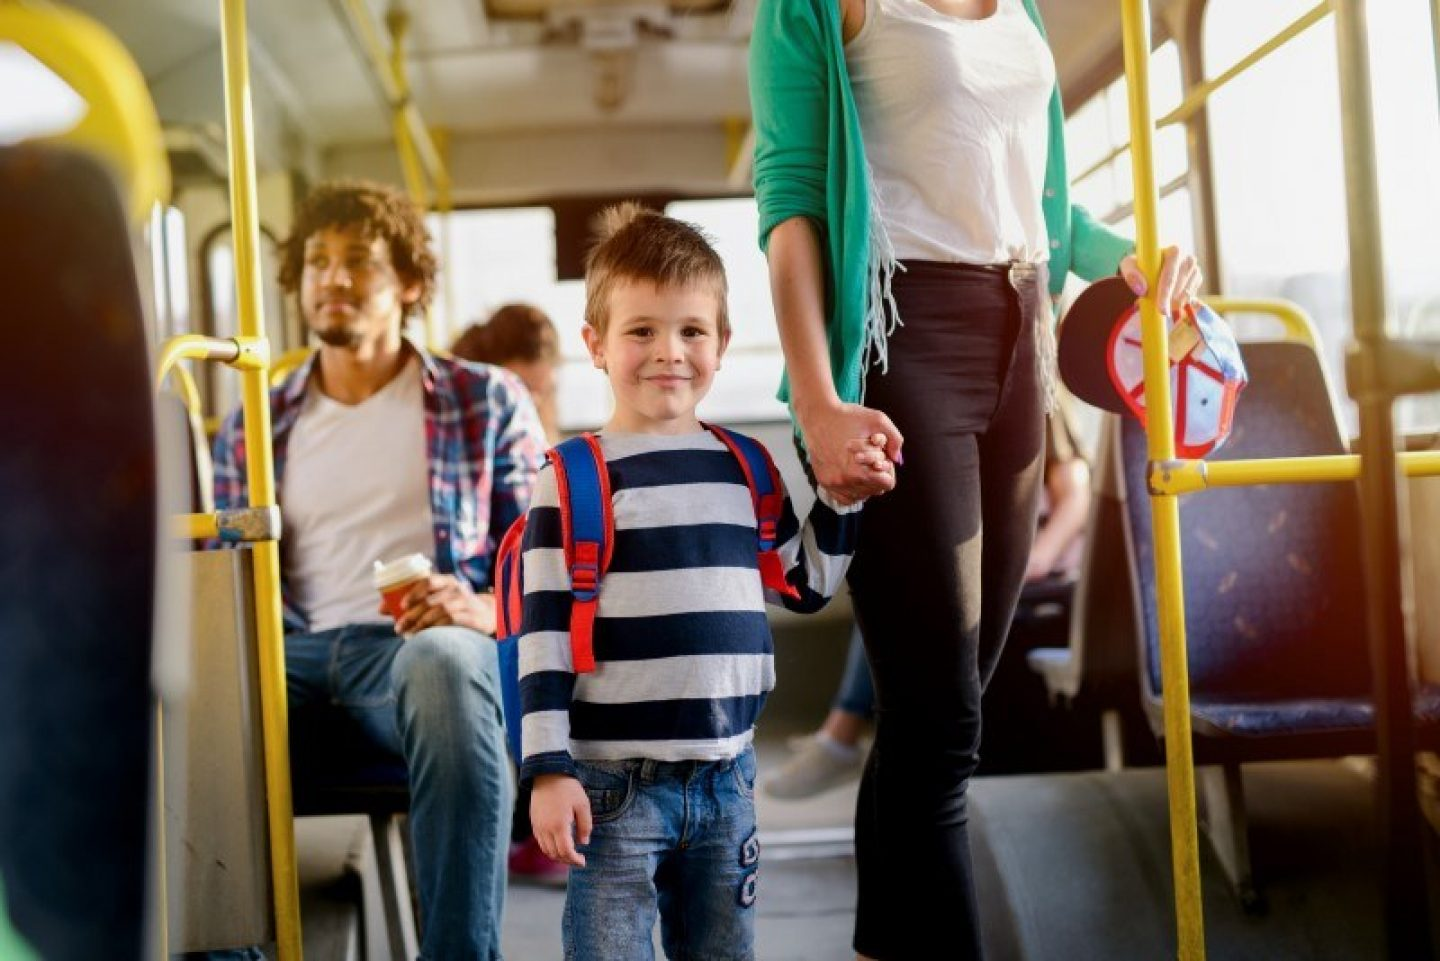 Child and family on a bus